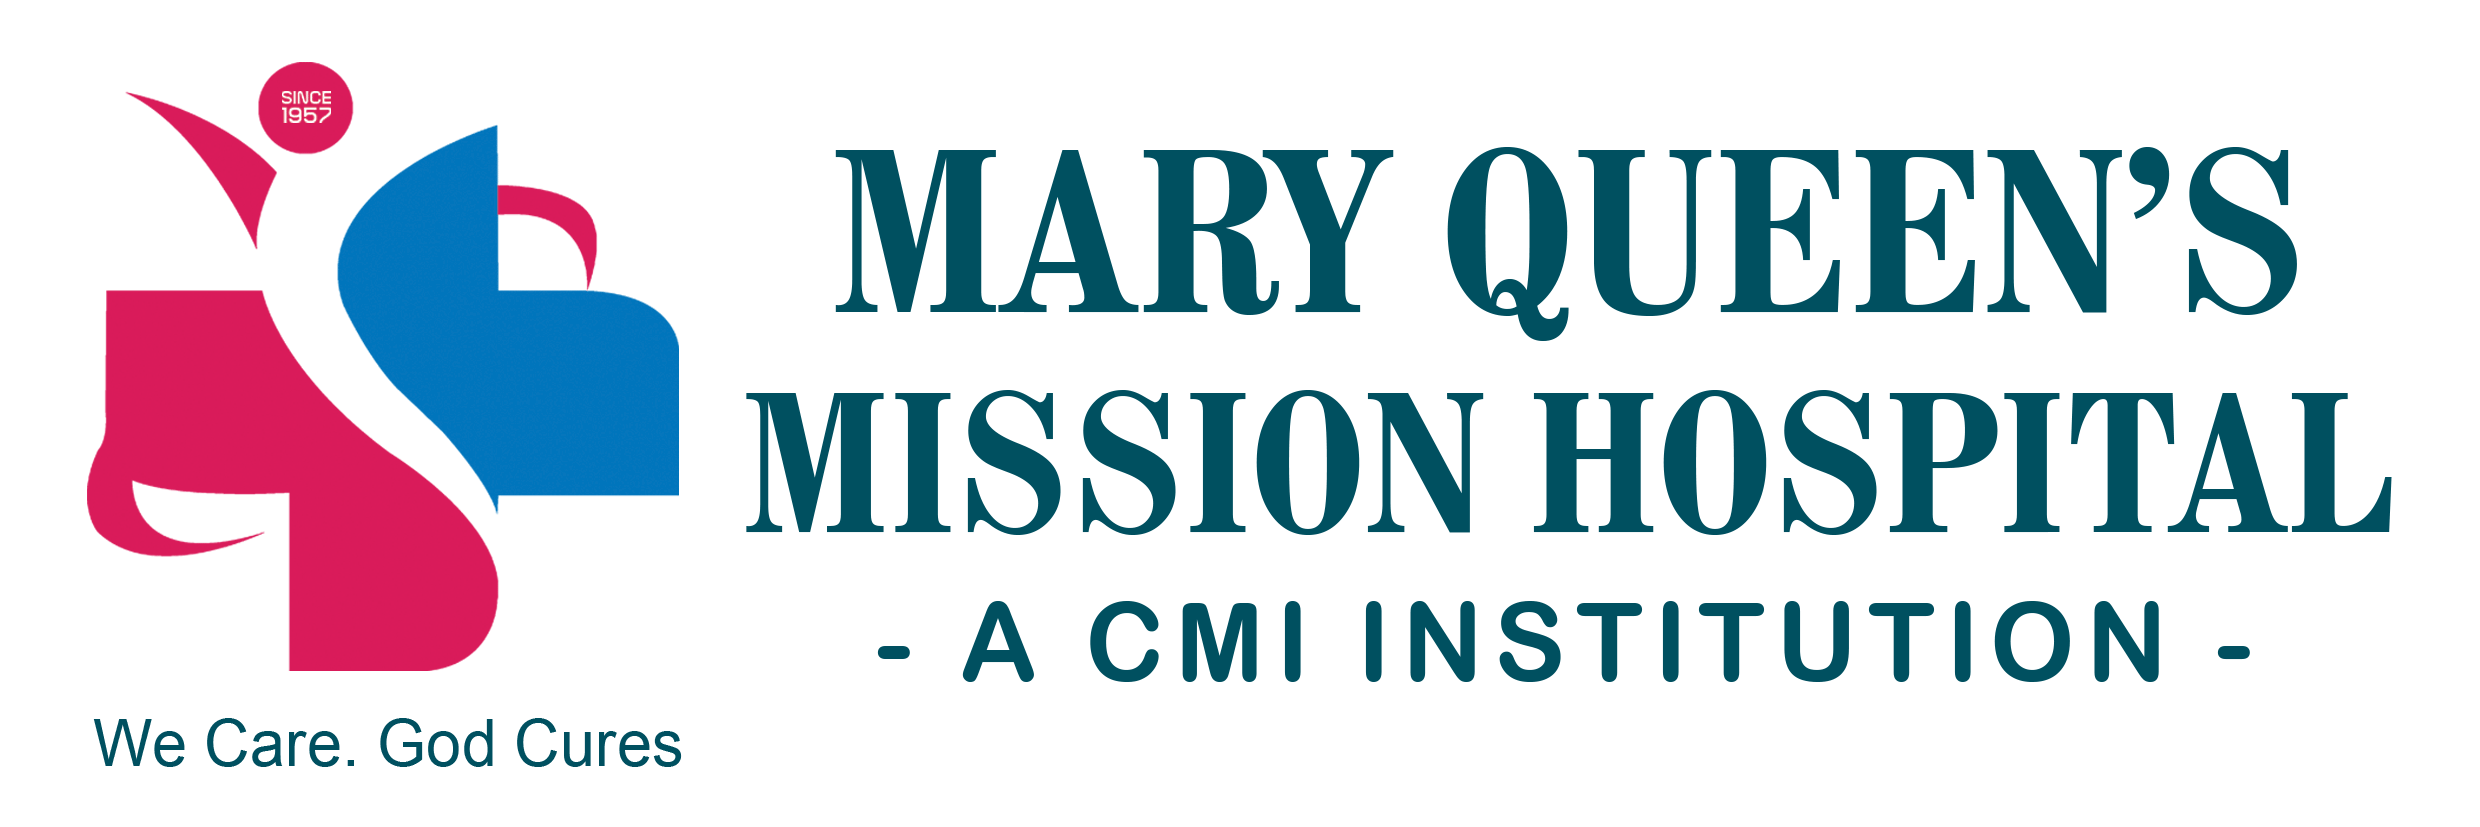 Mary Queens Mission Hospital Kanjirappally